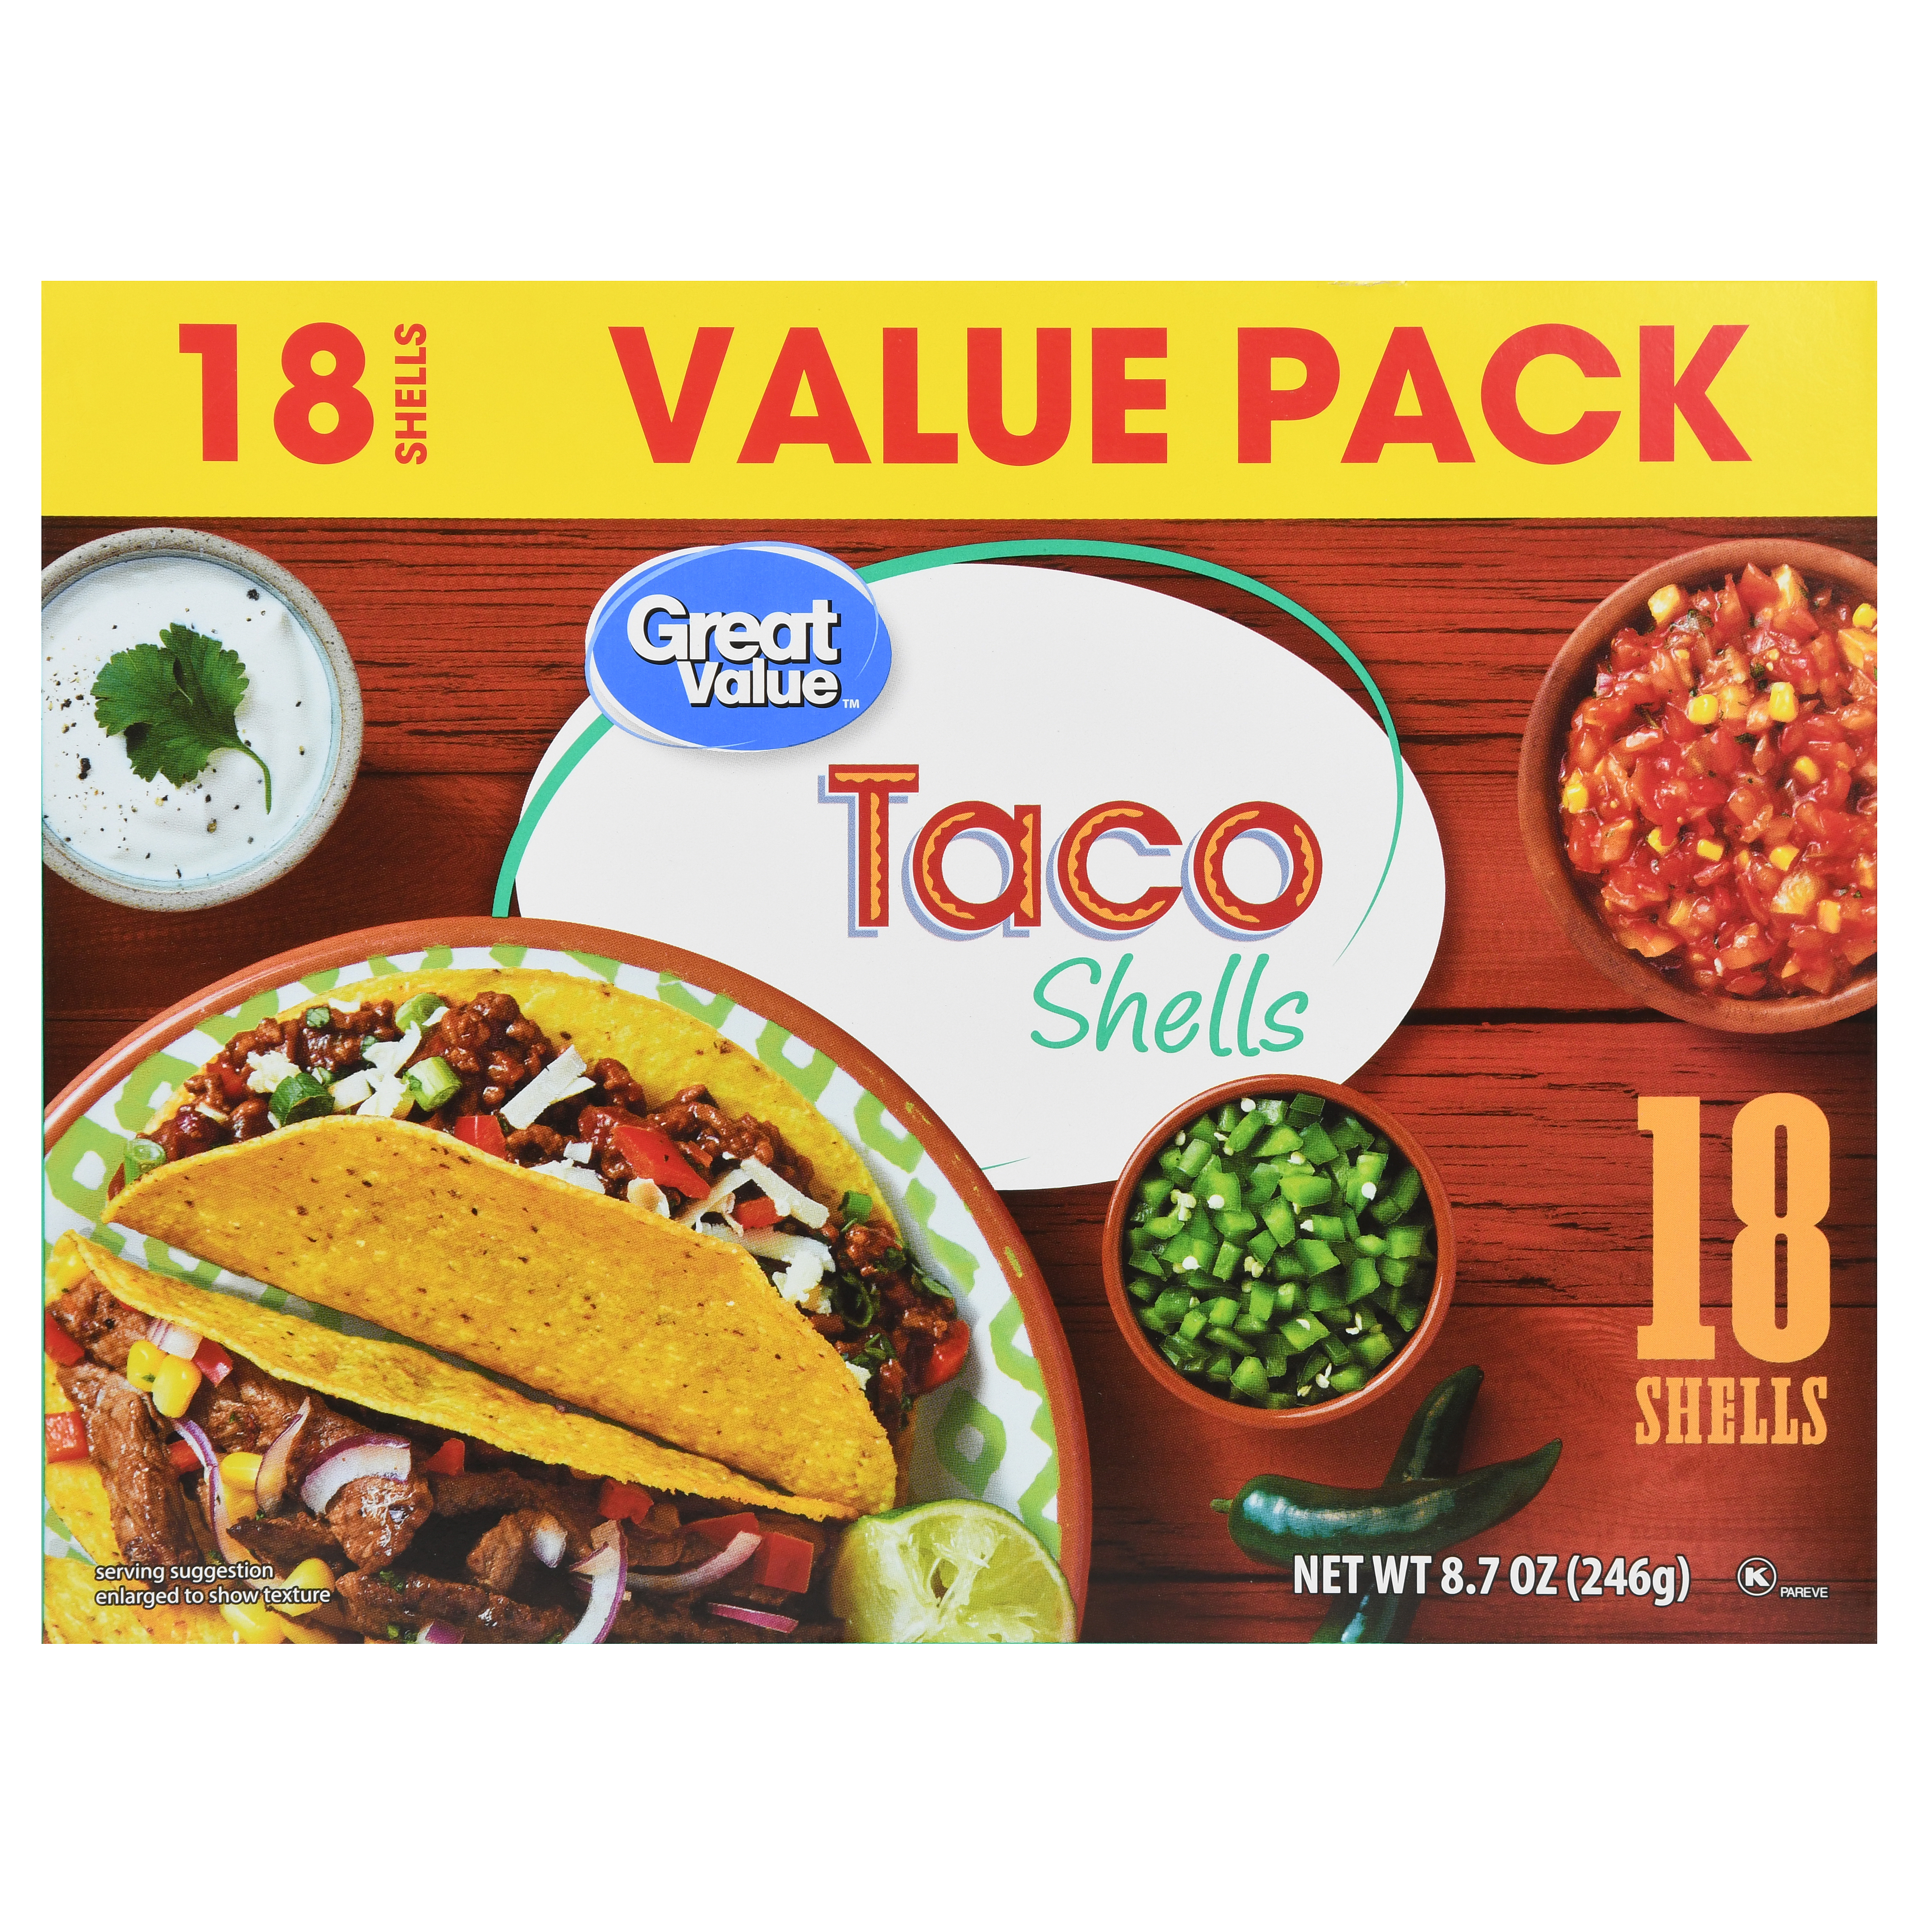 Great Value Taco Shells Value Pack, 18 Count